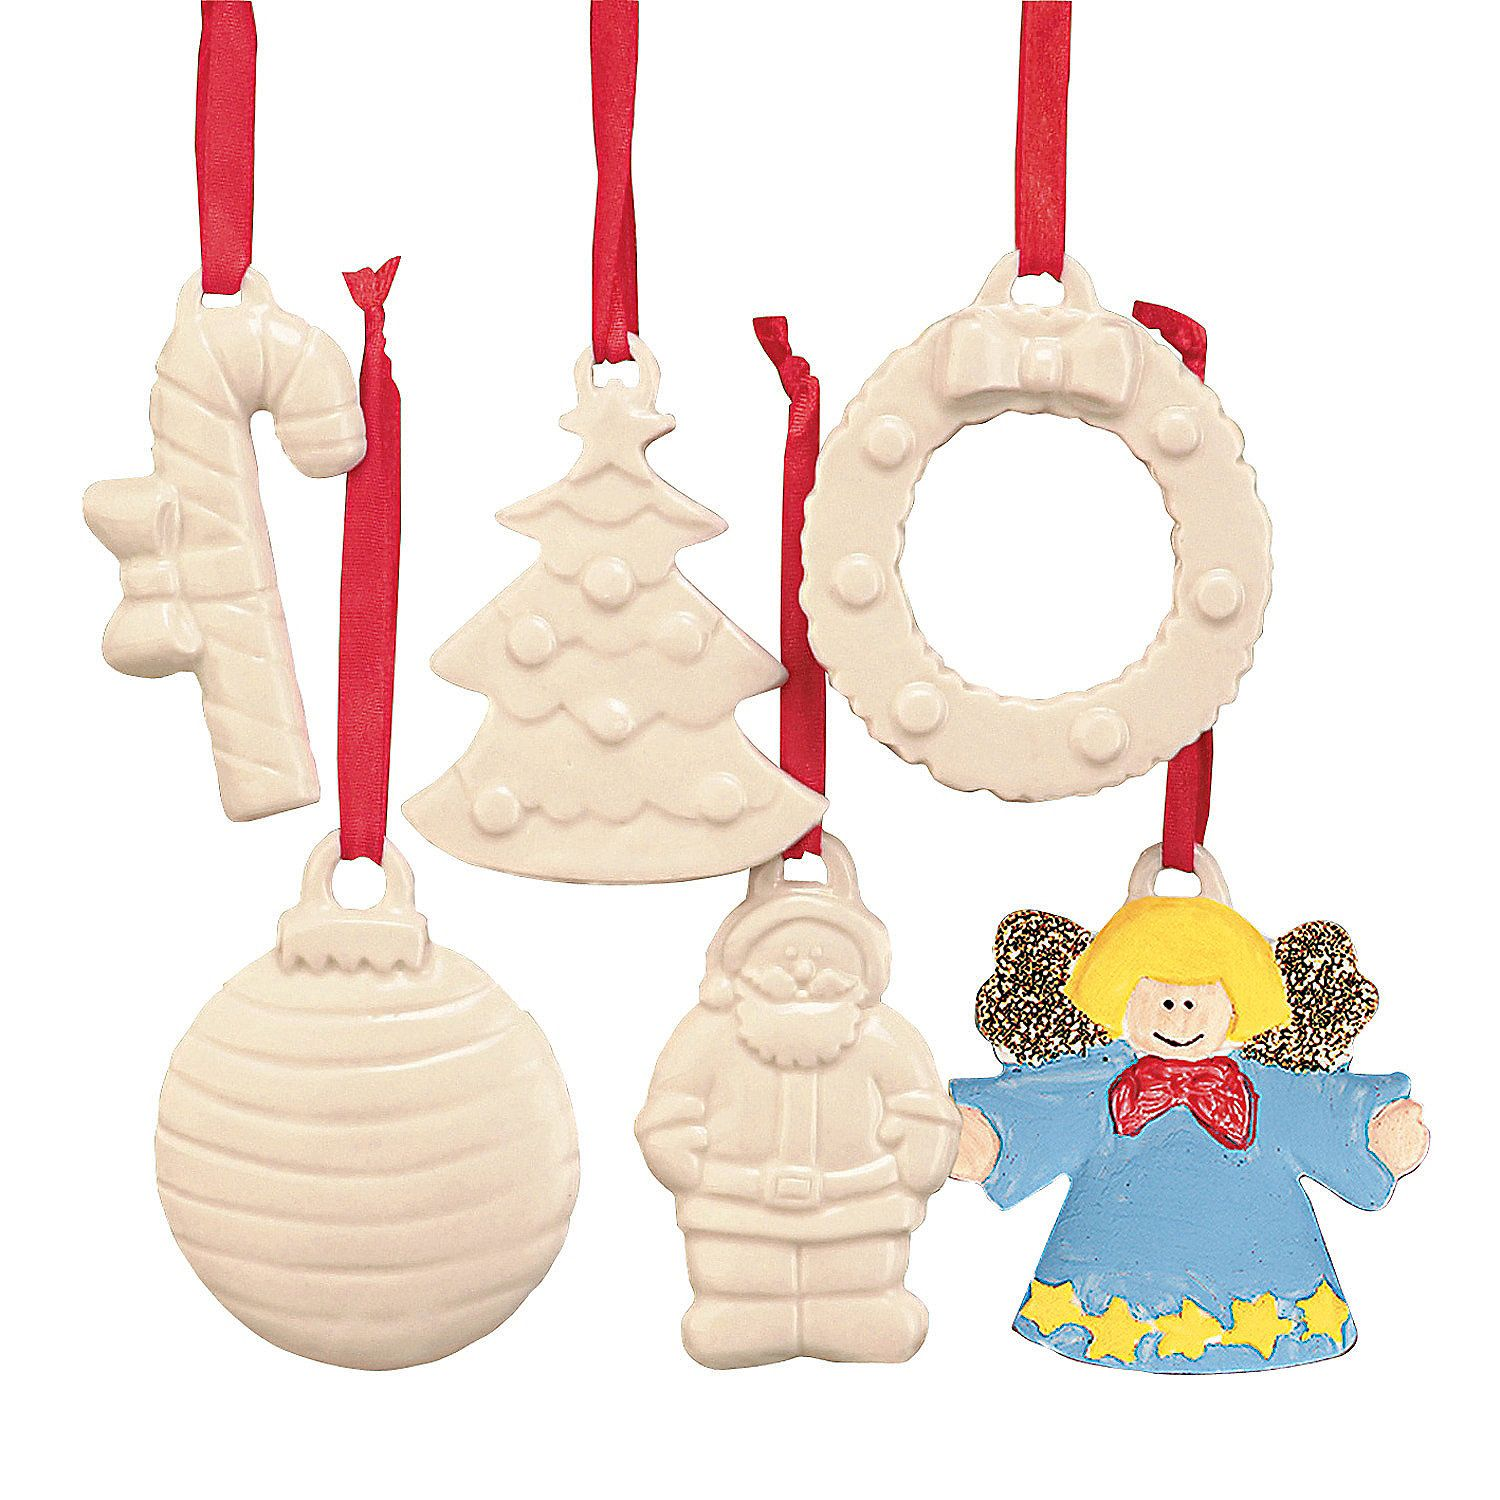 diy ceramic patterned holiday ornaments orientaltradingcom